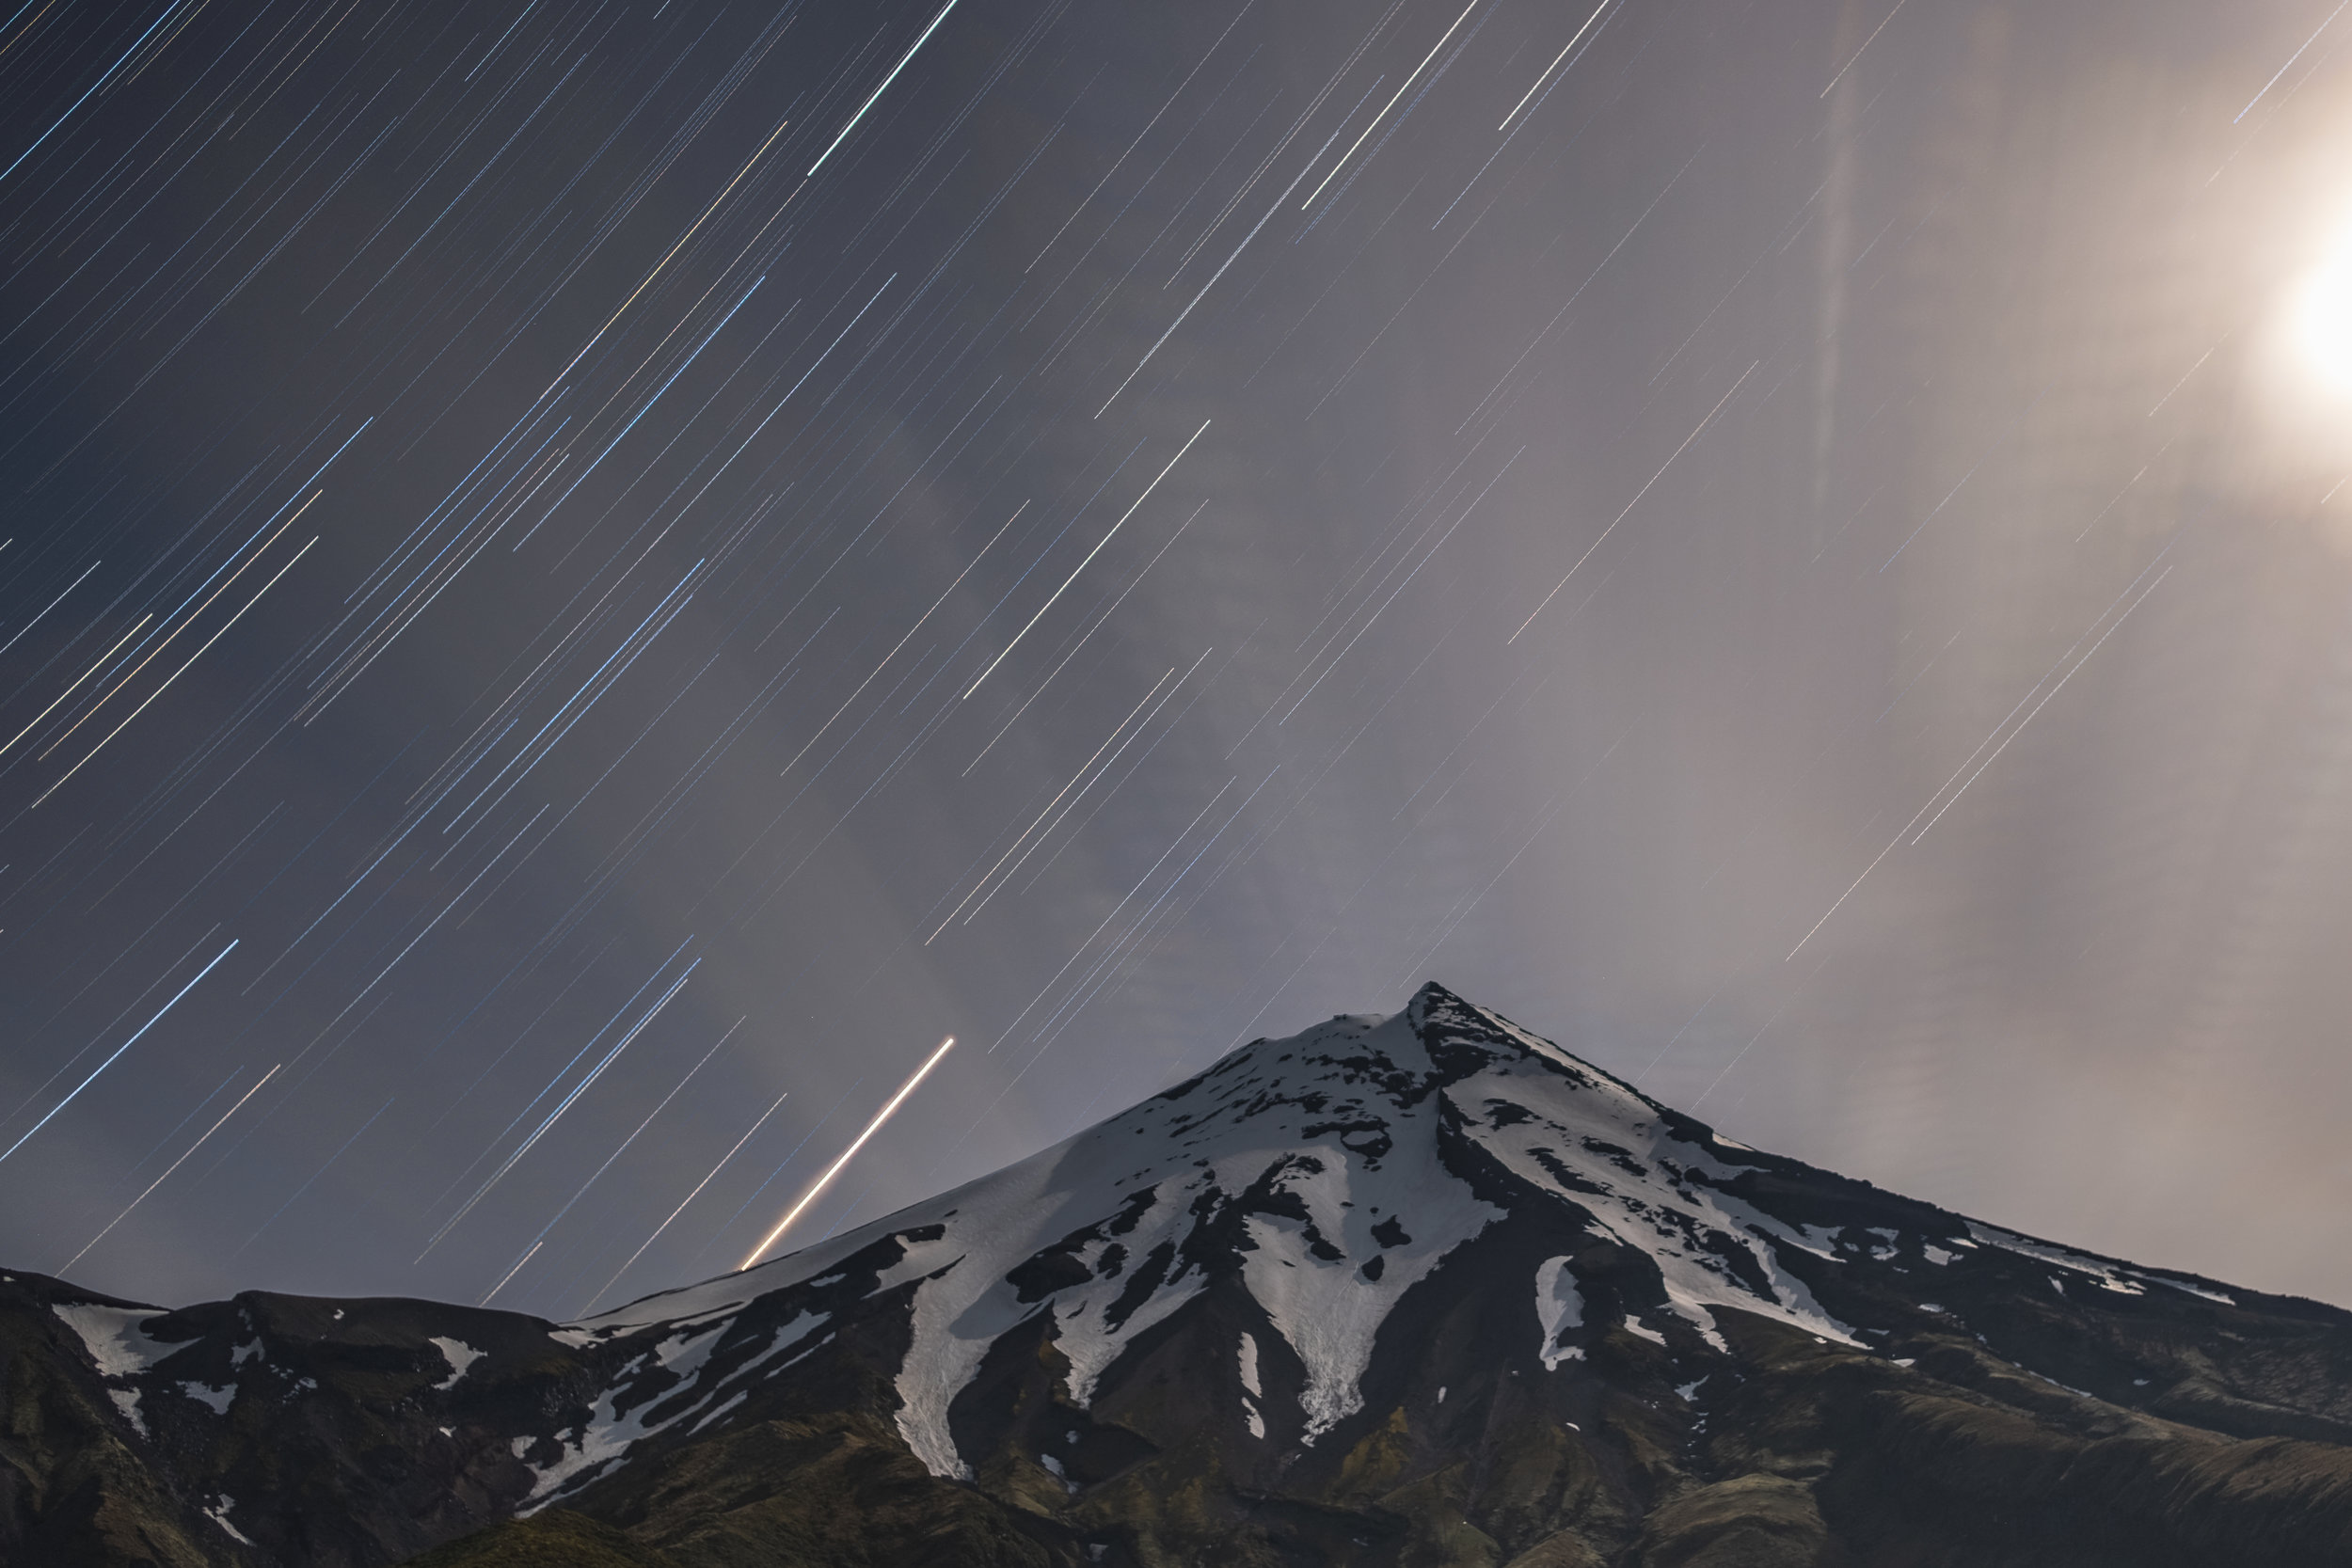 a night time peak with star trails